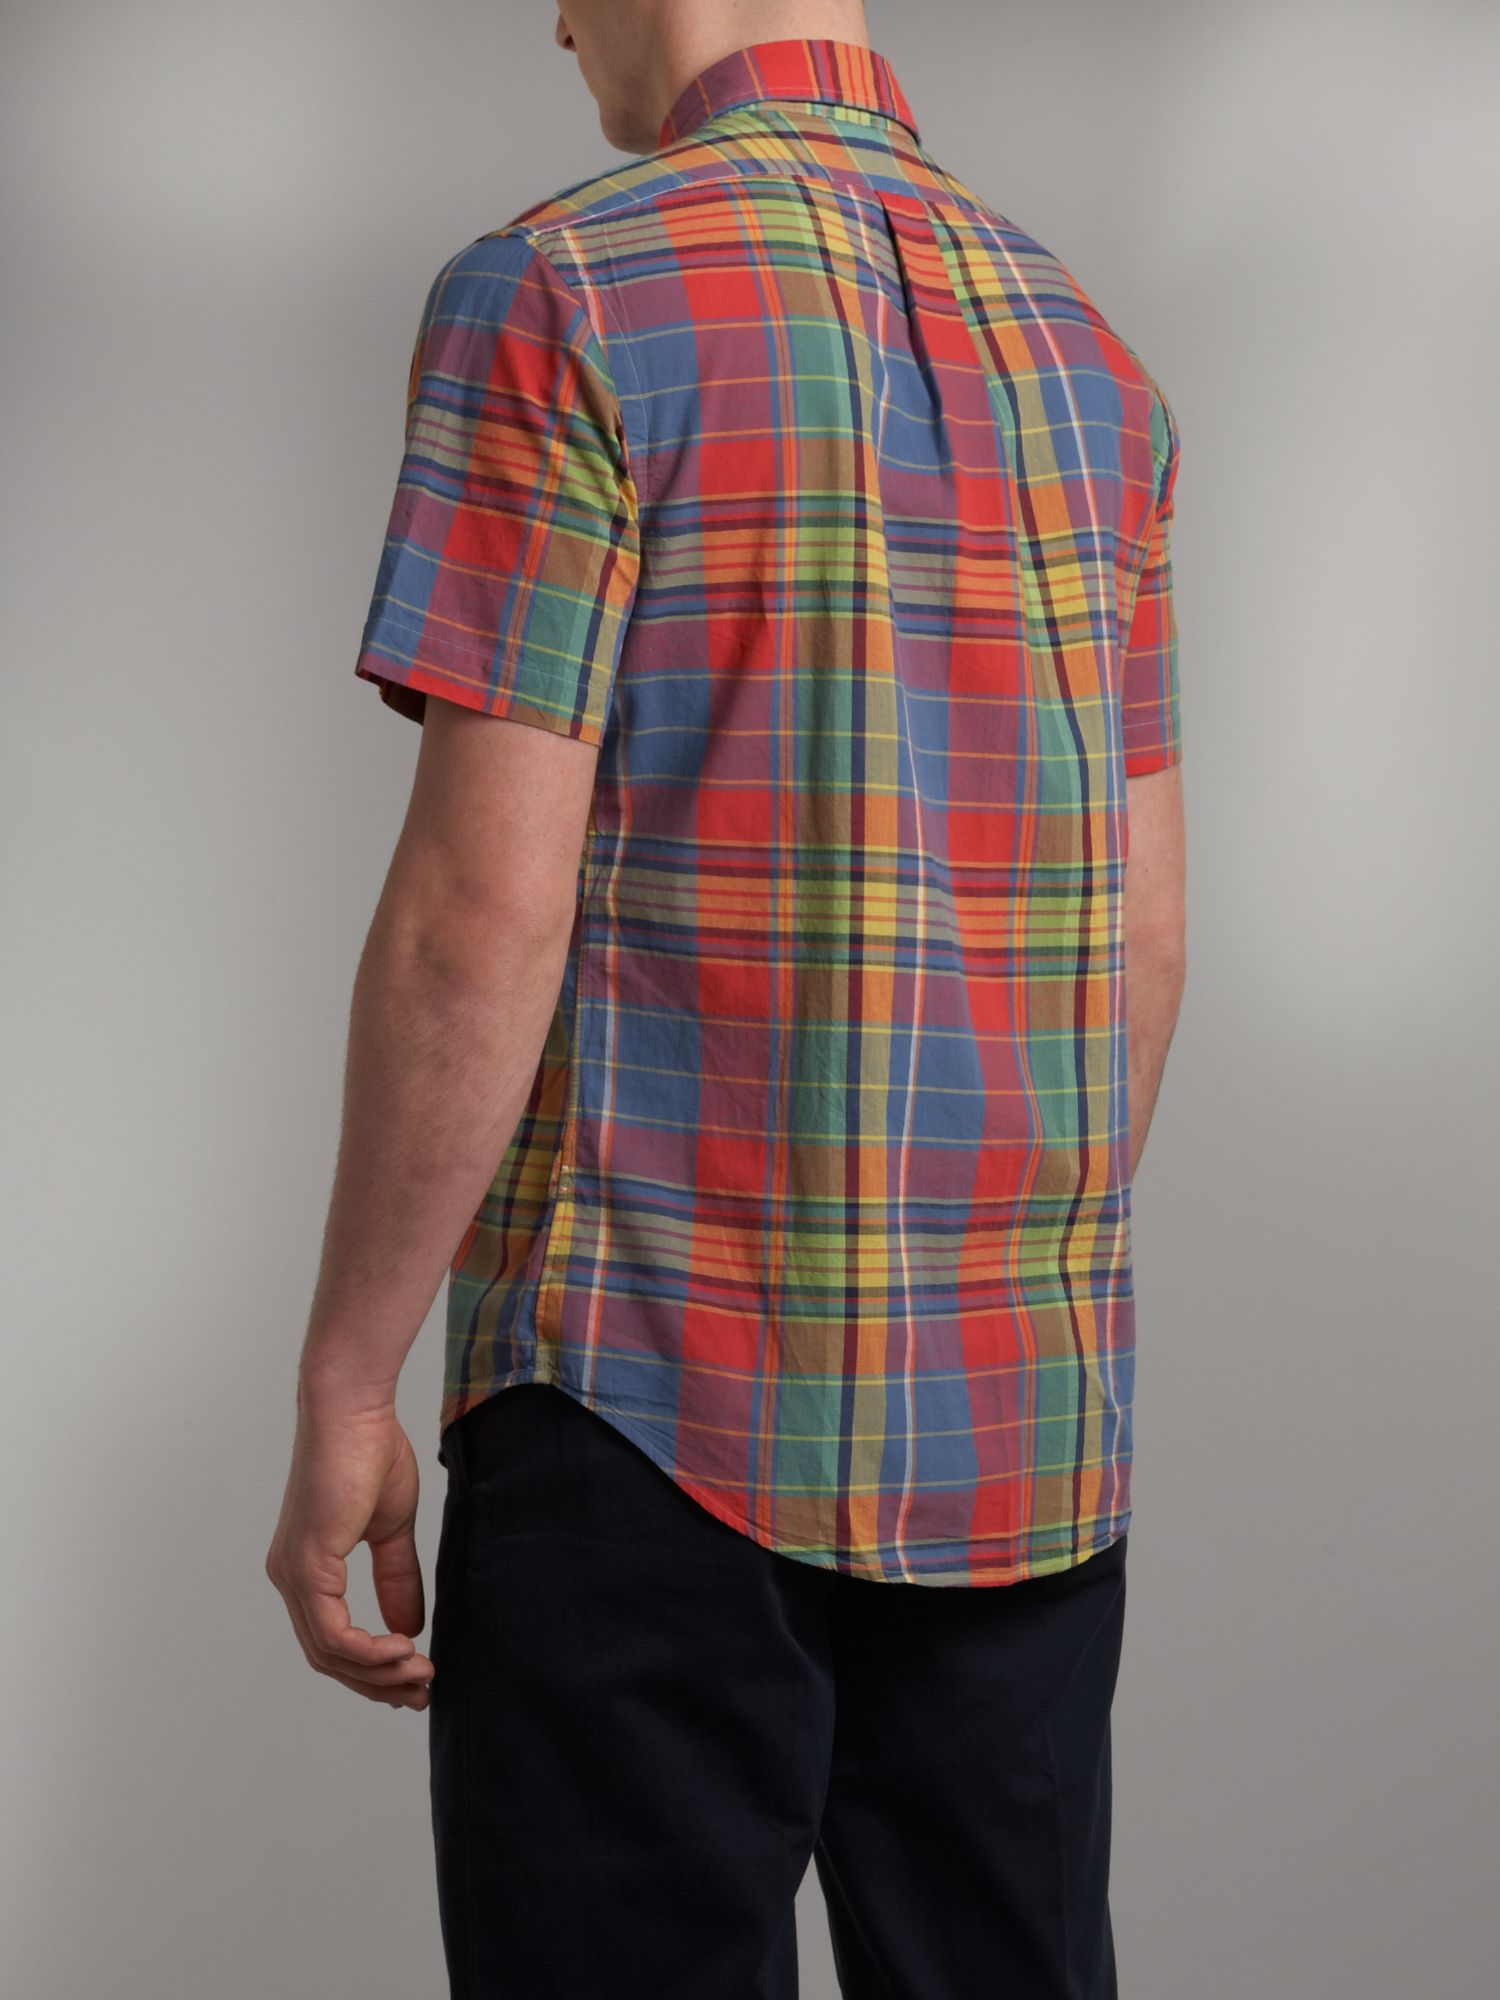 Here's a bright plaid that will easily take you from season to season, and year to year. Constructed of soft fabric with a relaxed fit, it features authentic Western details like Western yokes, spade flap pockets.